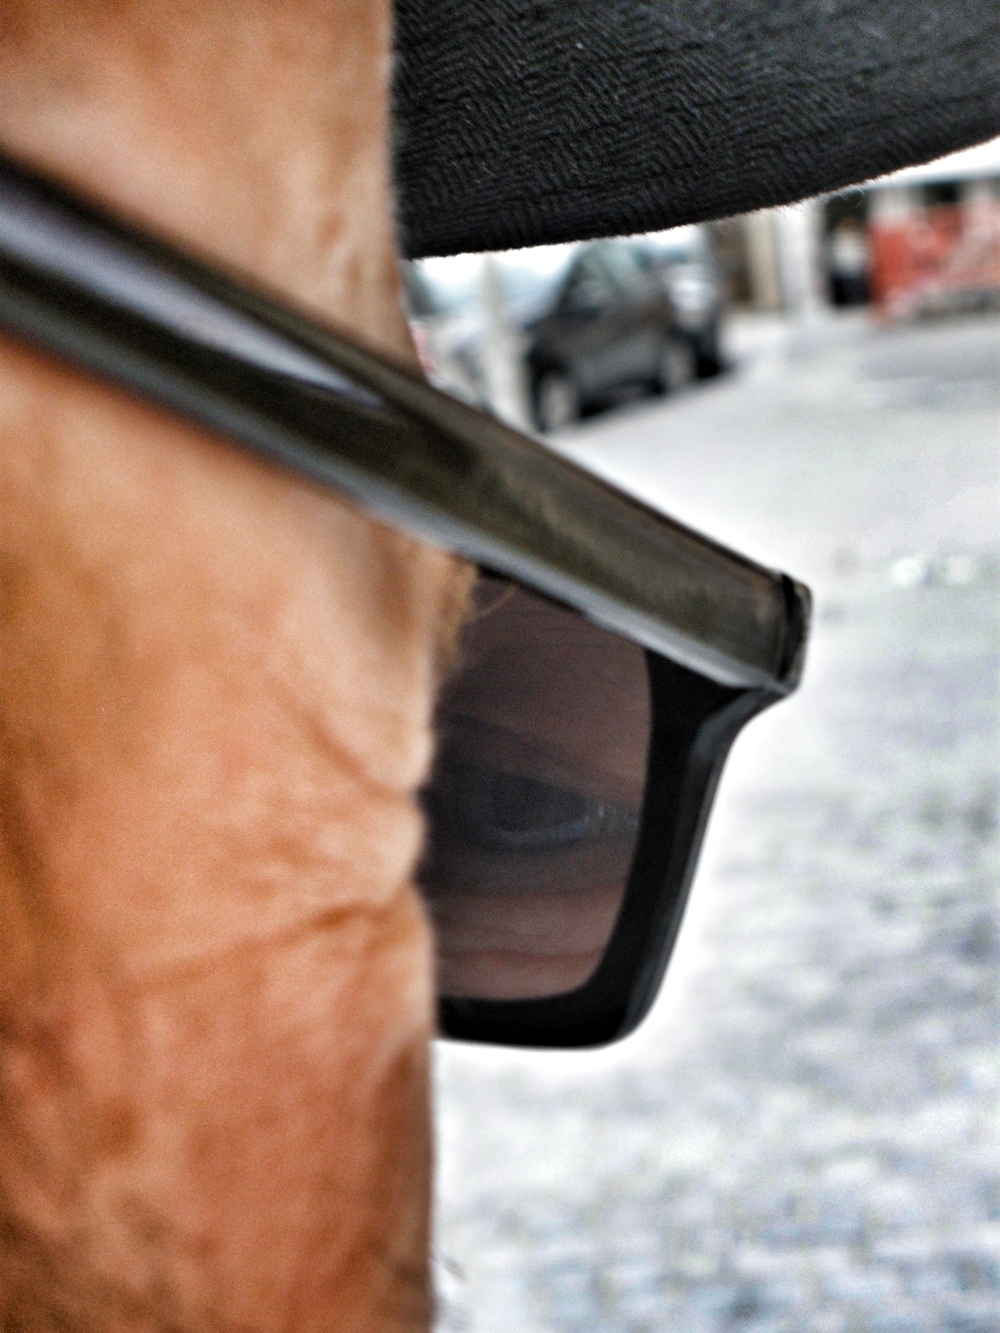 Rearview Mirrors.JPG